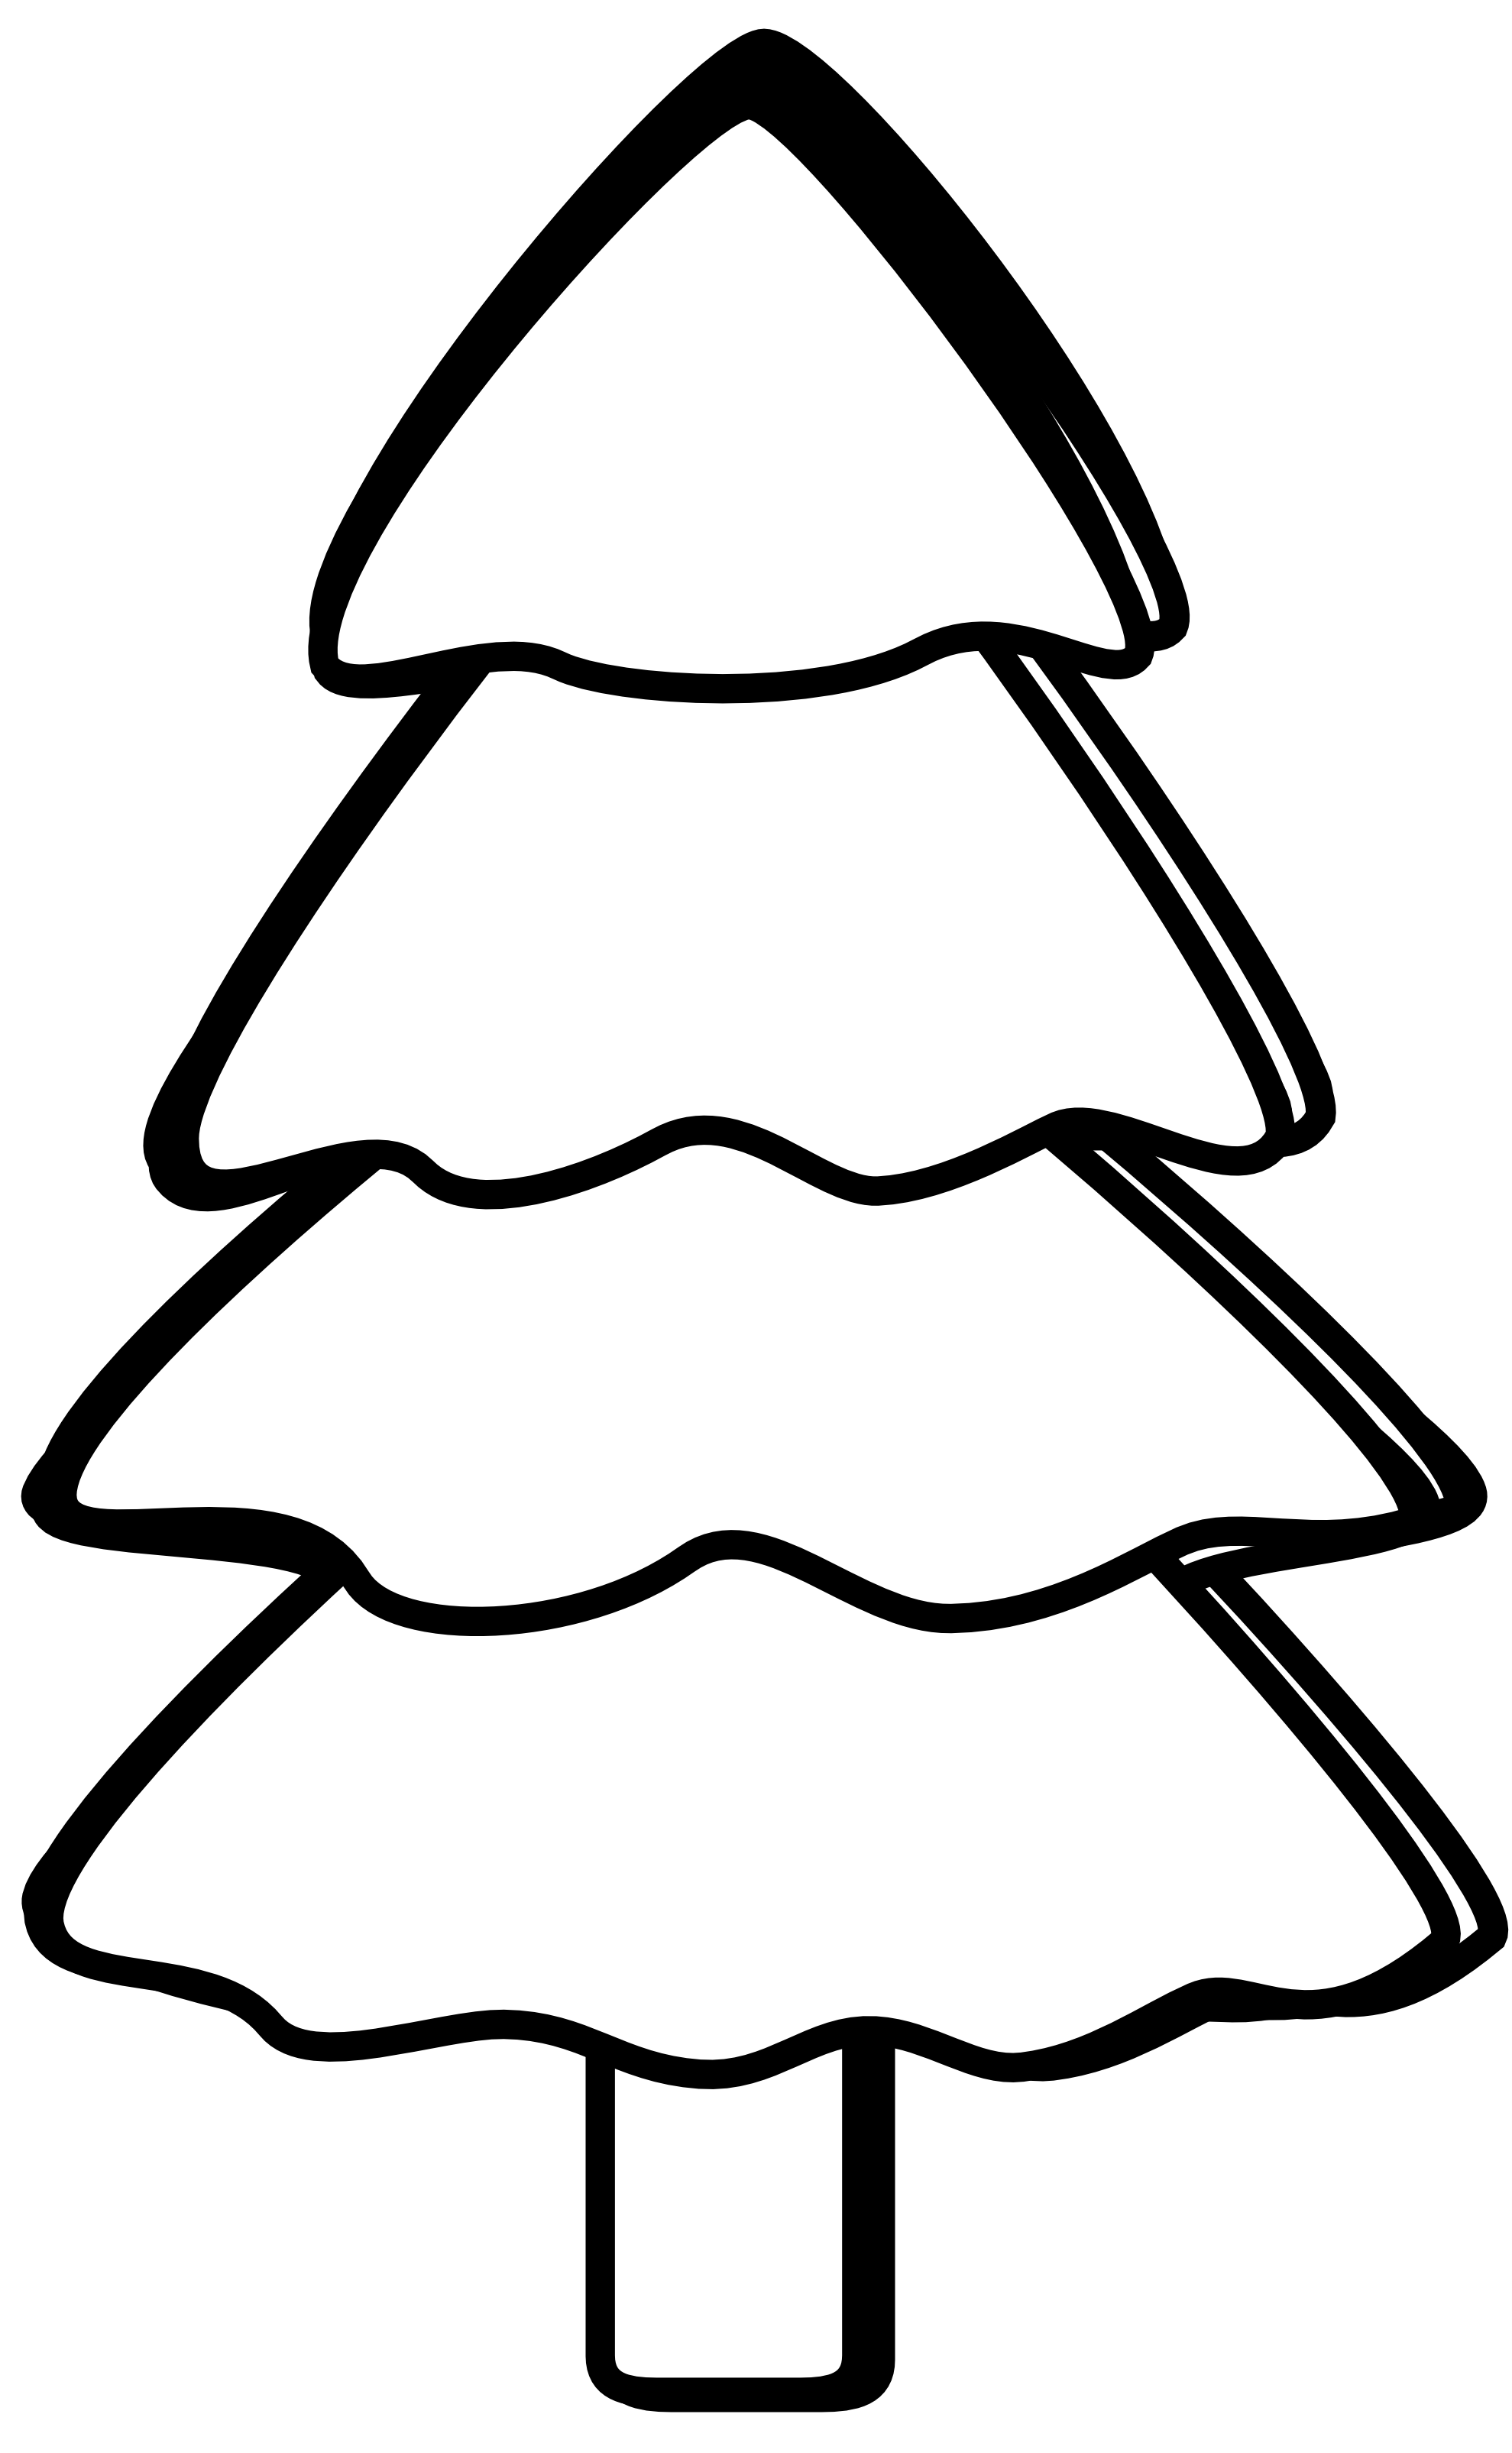 58 images of Black And White Christmas Tree Clip Art . You can use ...